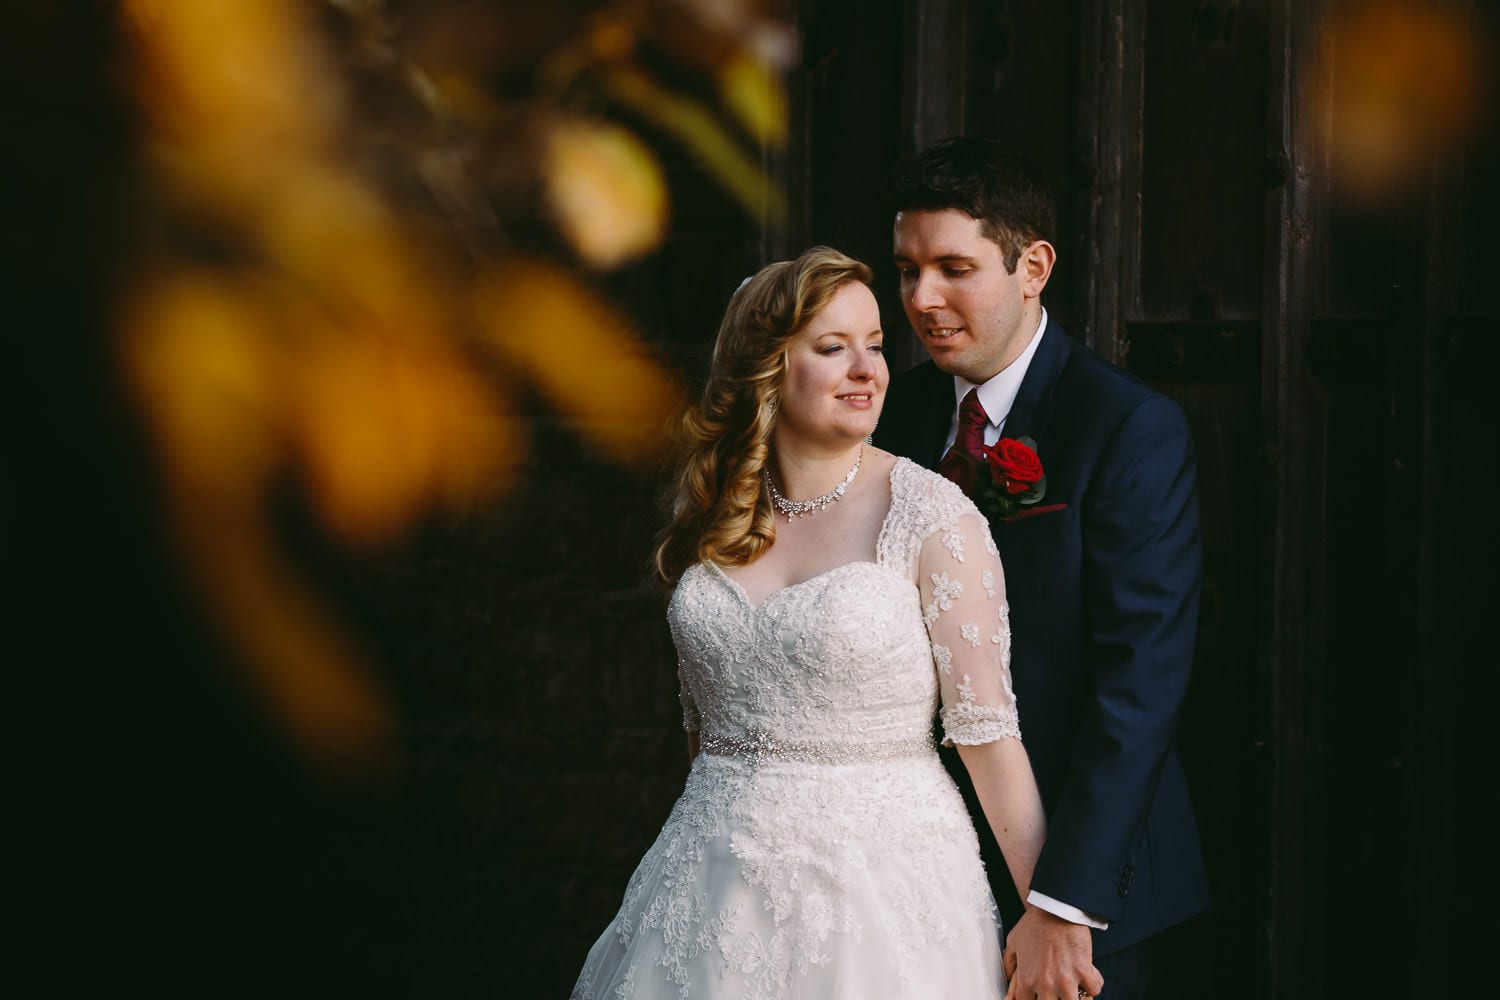 A portrait of the bride and groom at Berekeley Castle